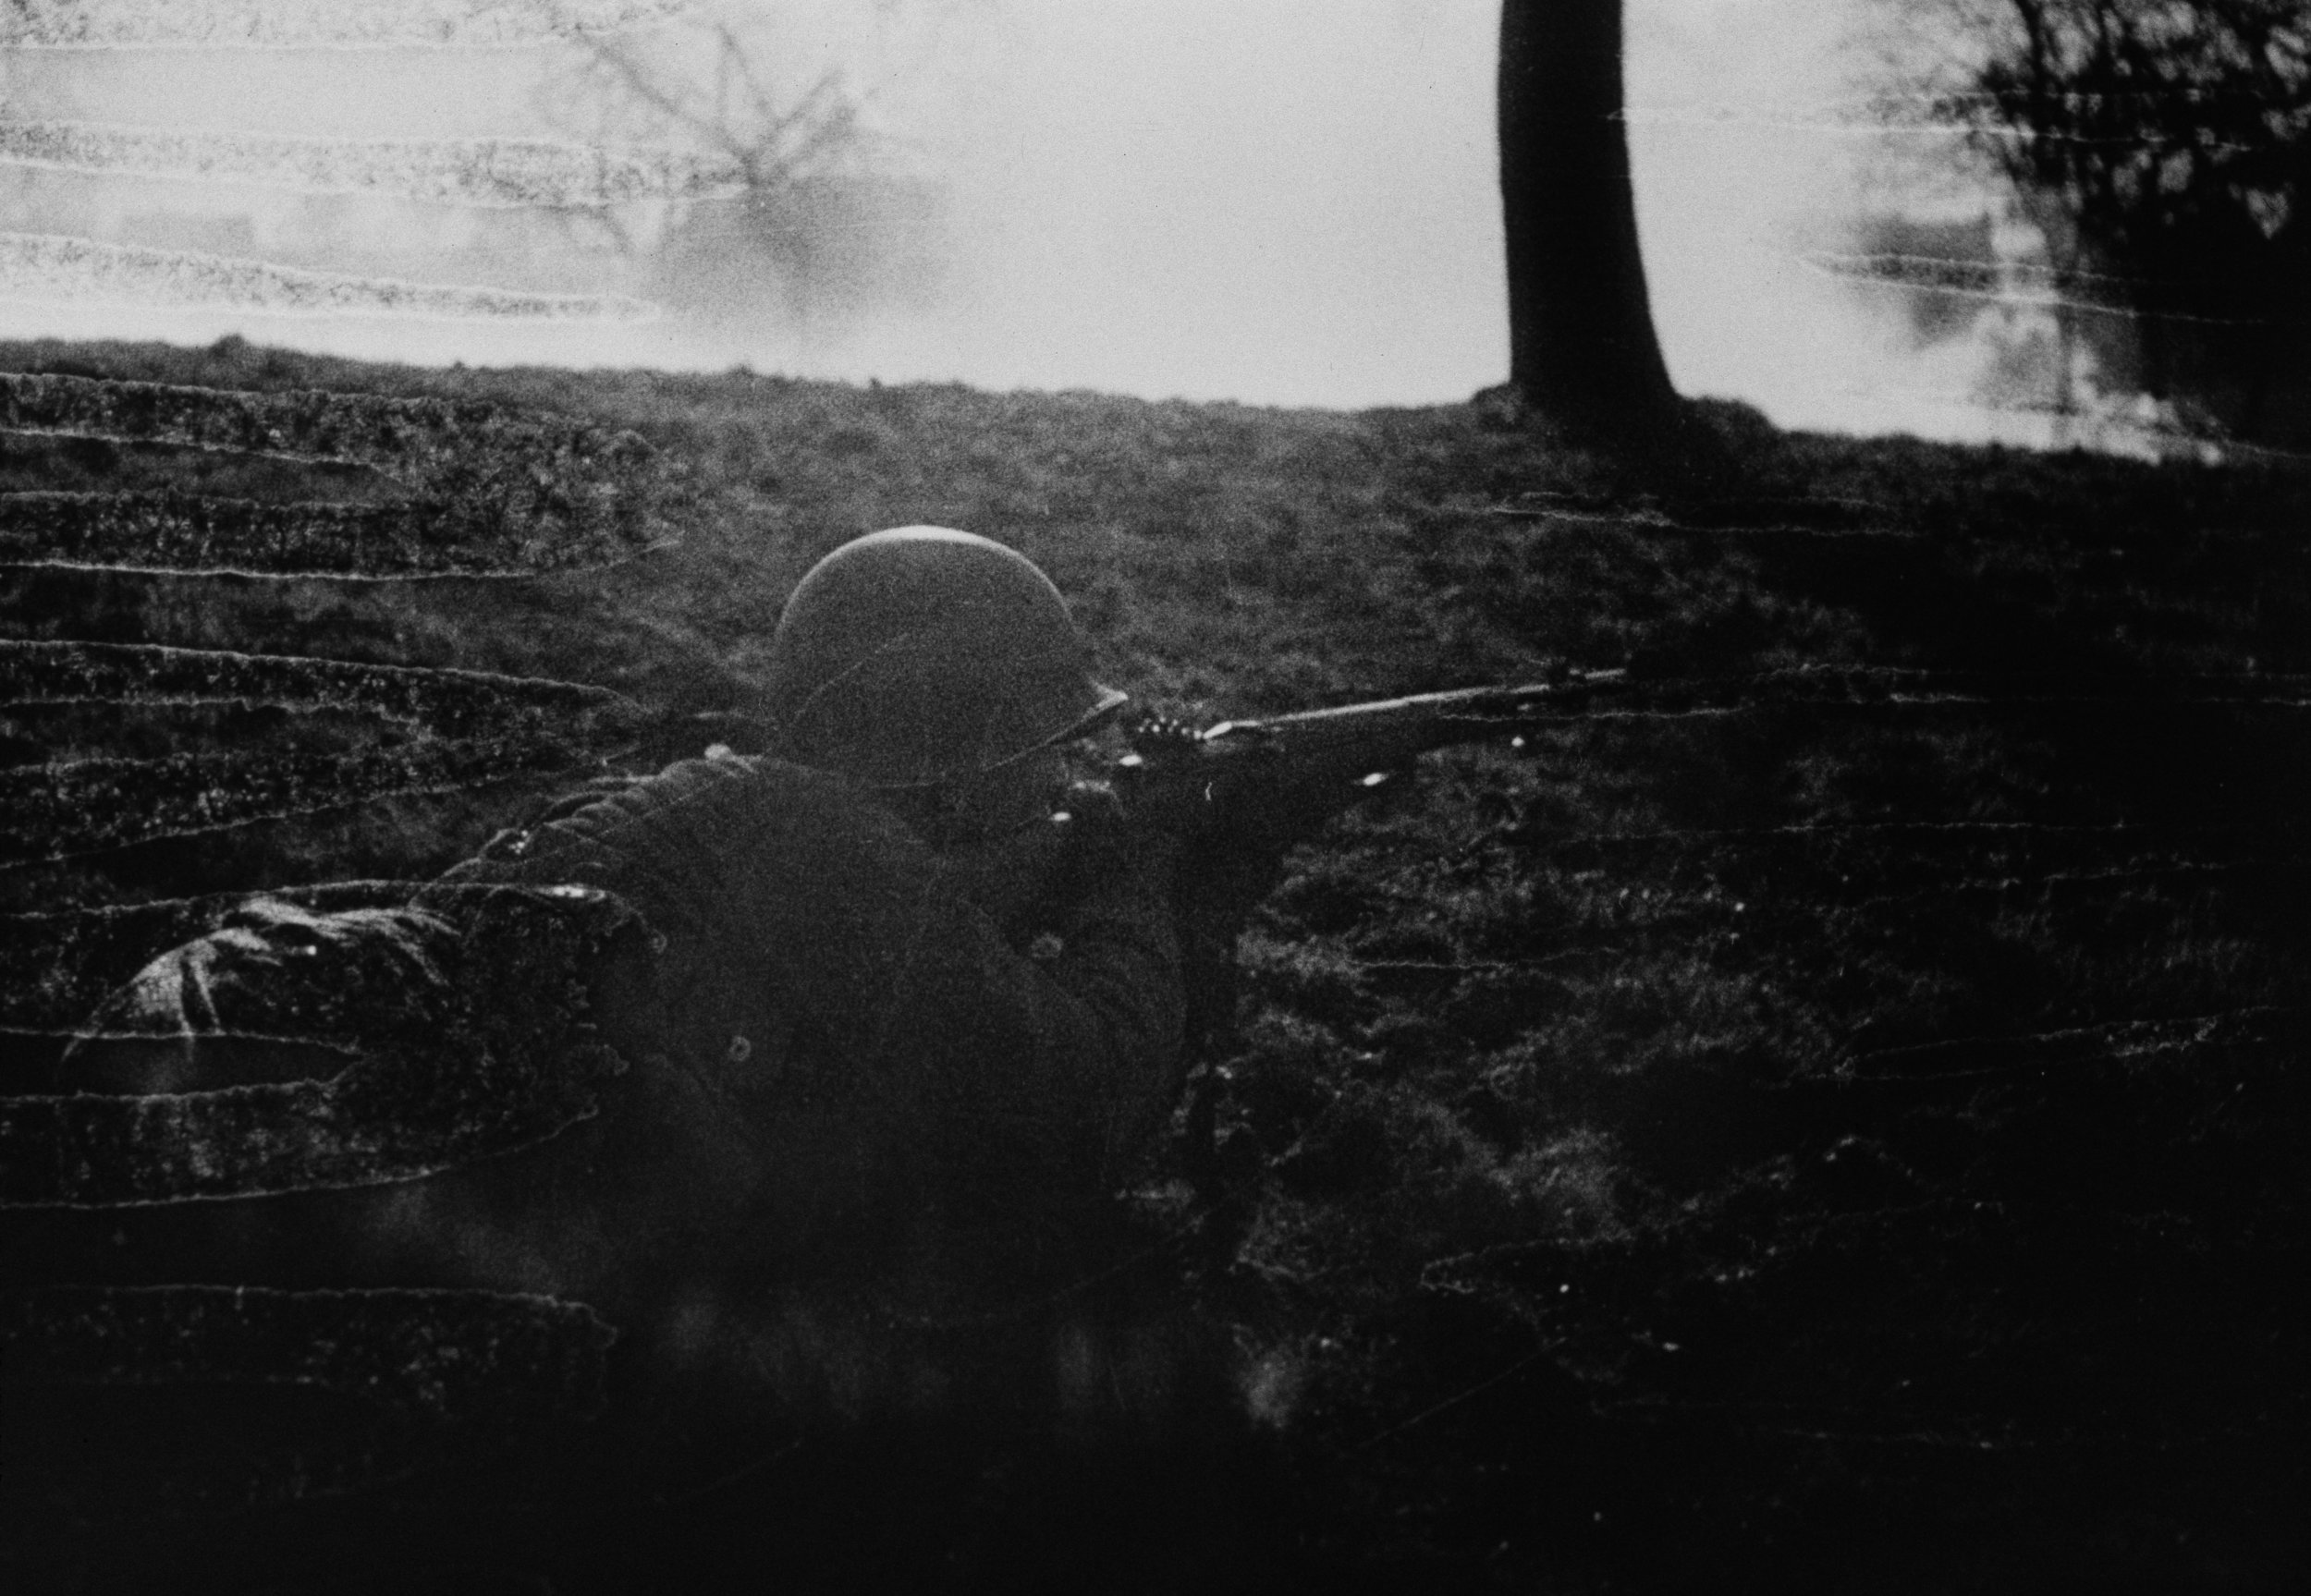 Aim to kill: An American GI lines up a shot during the battle on the Rhineland Valley, March, 1945